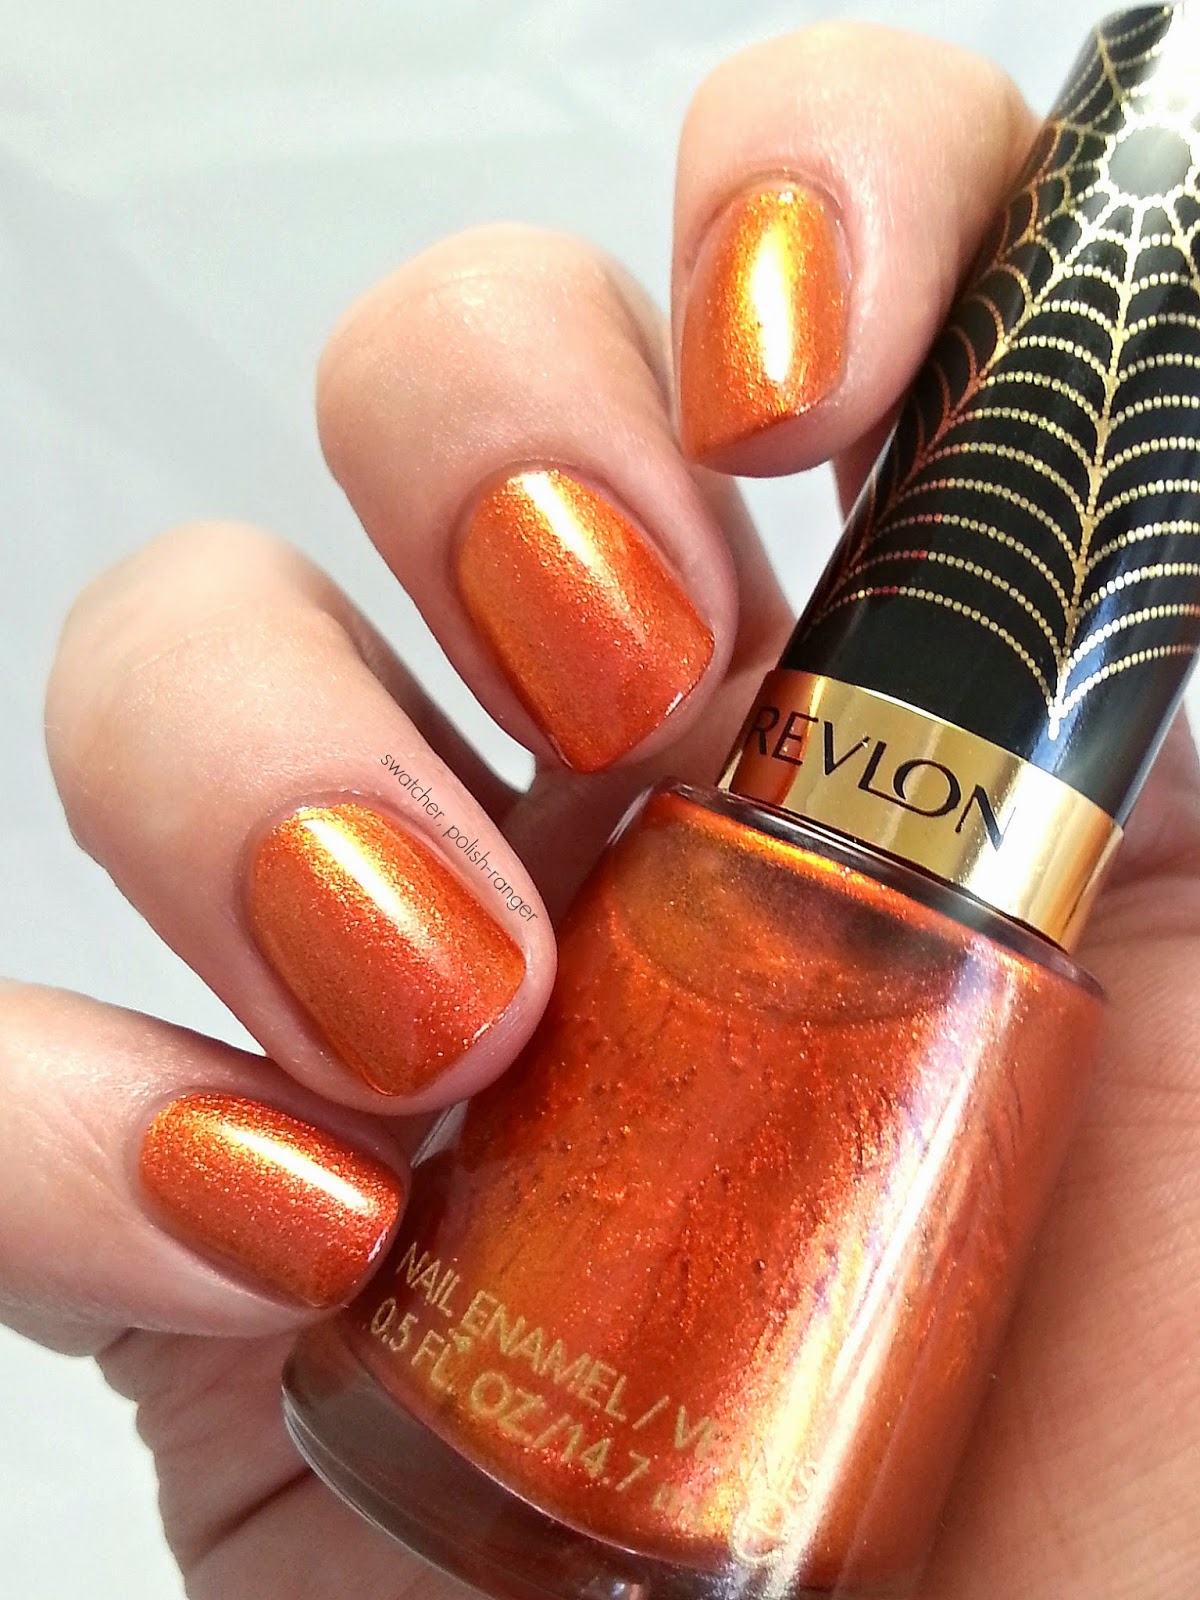 Revlon Electric Chrome Collection LE Electrified Web swatch